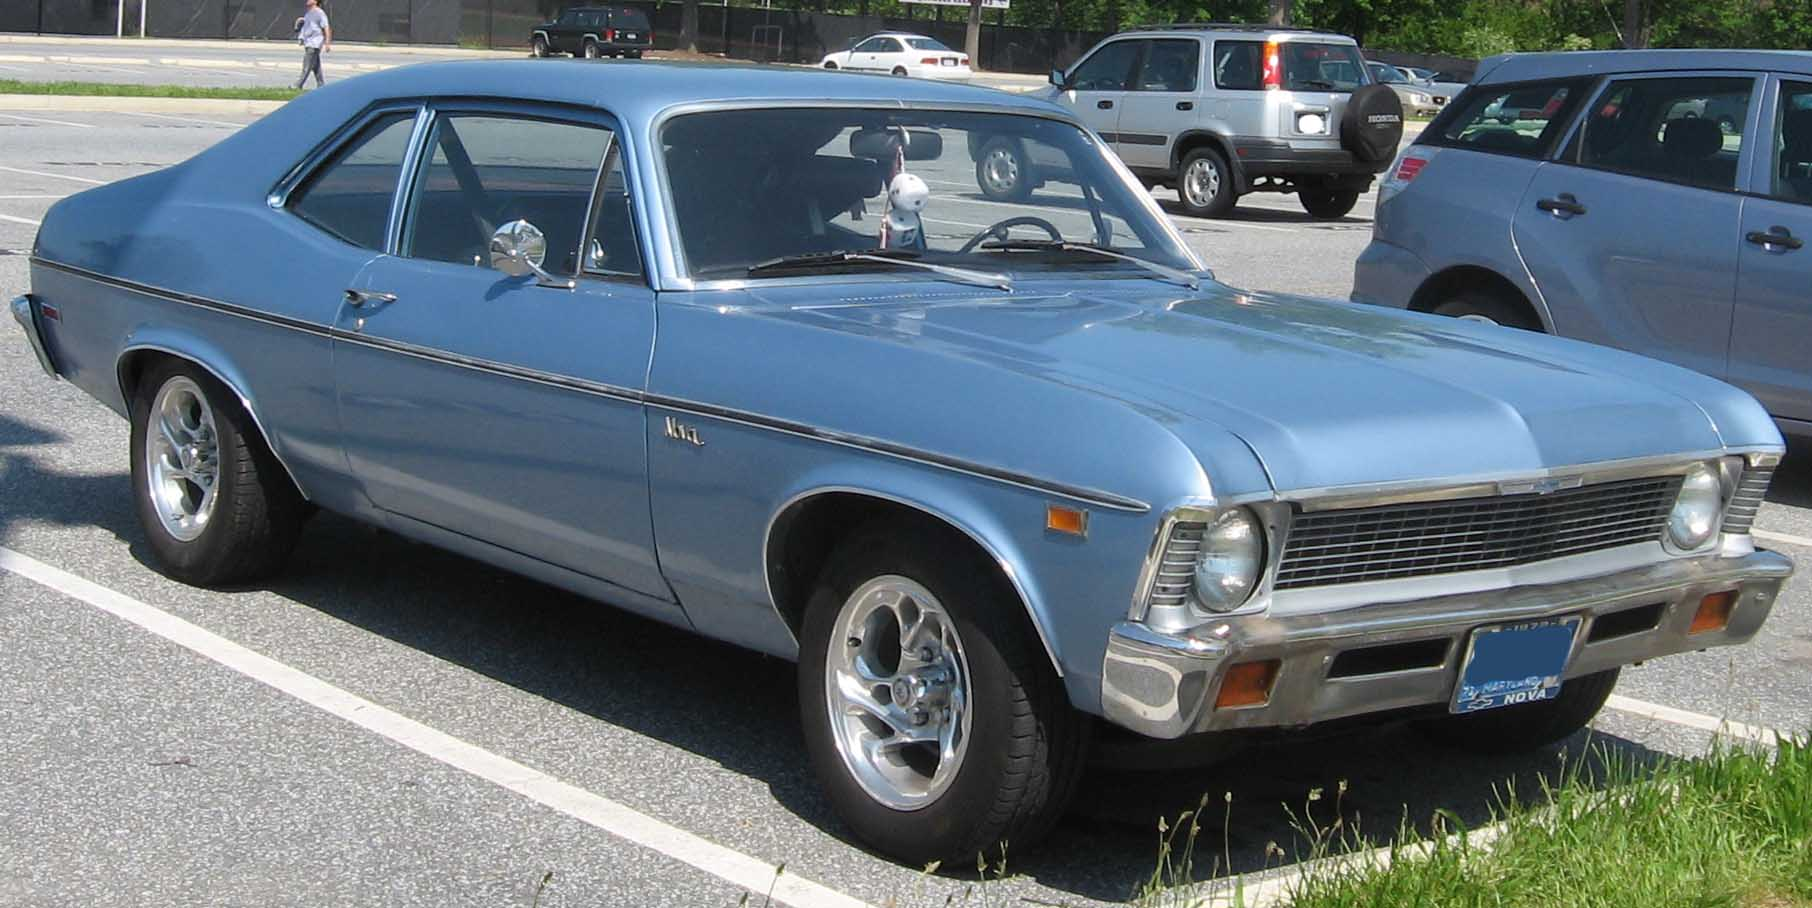 Chevy Malibu 2012 >> File:1972 Chevrolet Nova.jpg - Wikipedia